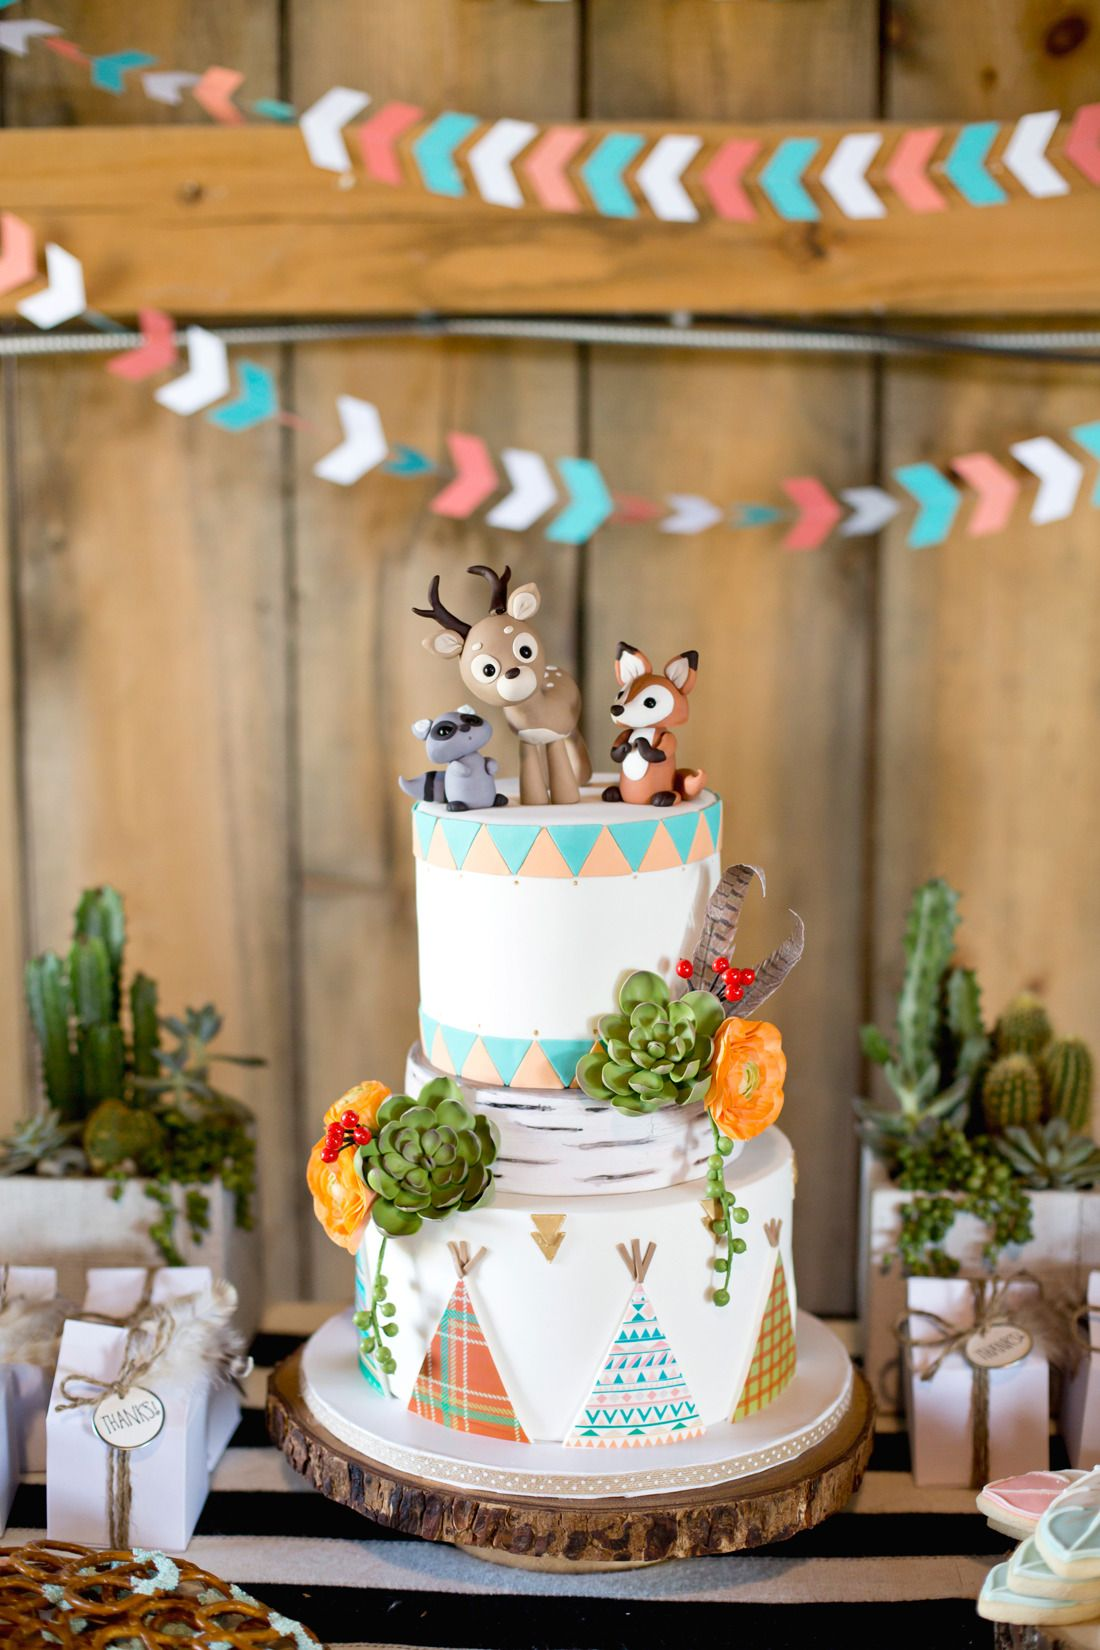 Wild And Free Themed Party Cake And Cake Pops By Bloom Cake Co Cookies By Hello Baked Photo By Krista Lii Photography Via Style Me Pretty